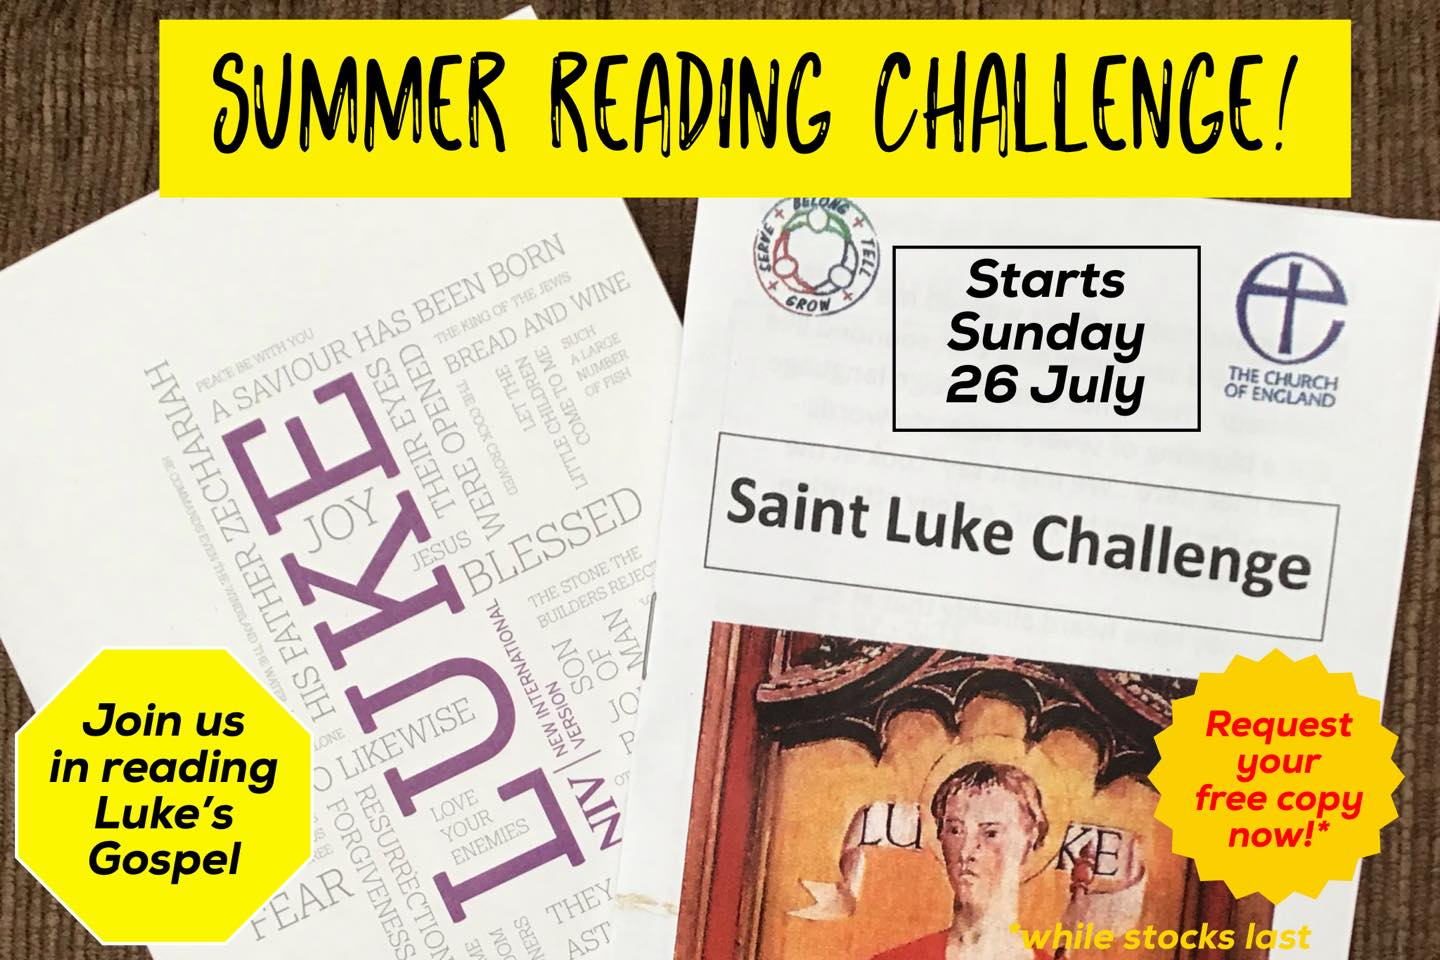 image of summer reading challenge poster